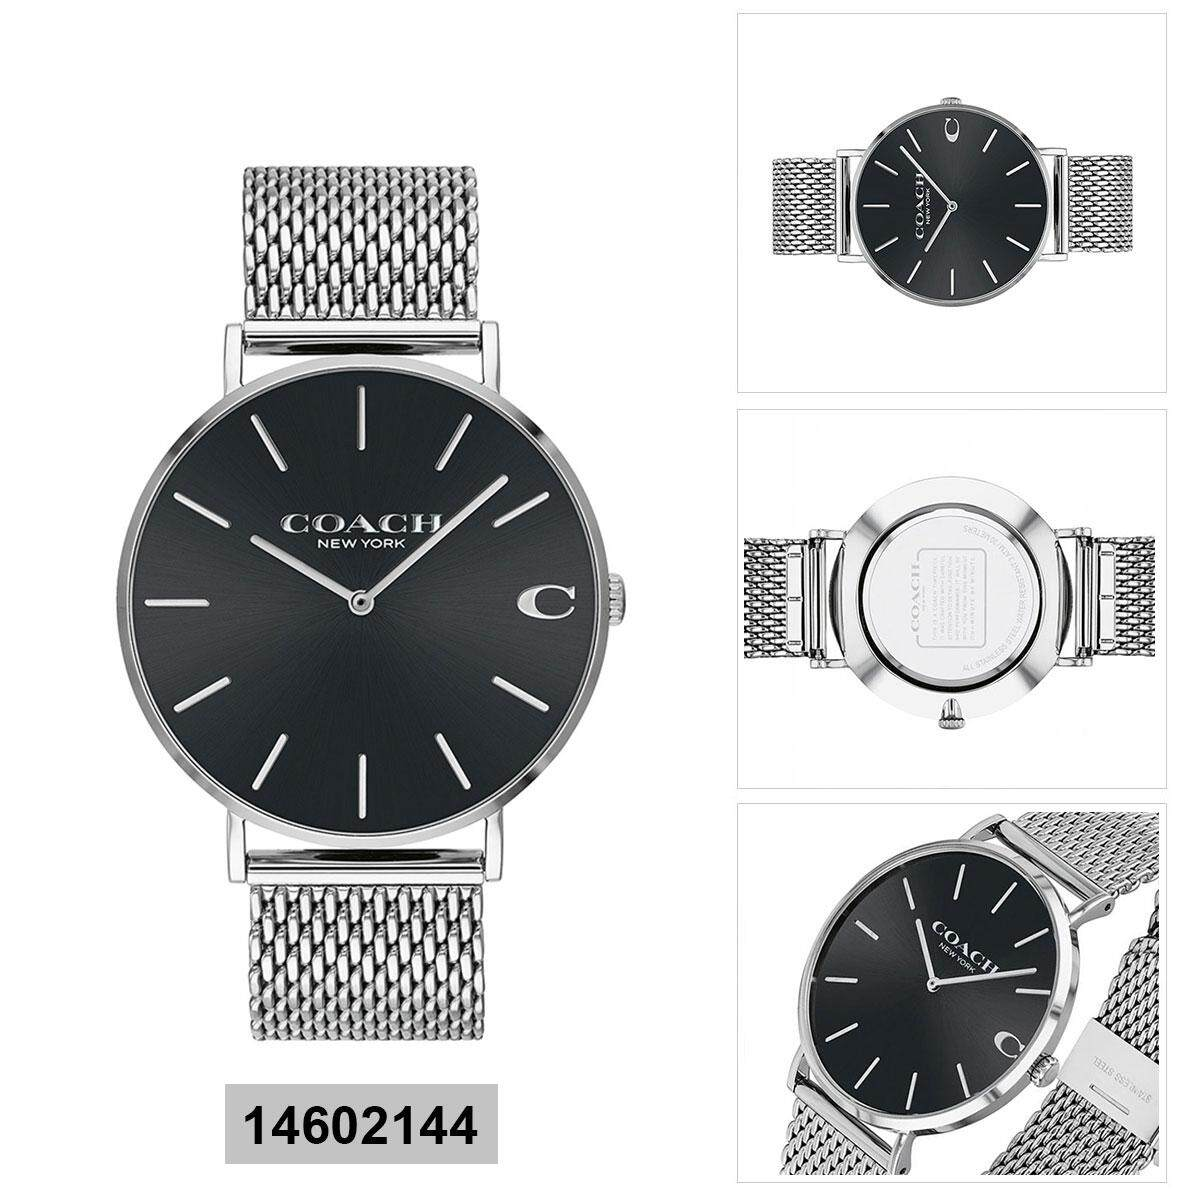 Coach Coach Charles Silver Stainless-Steel Case Stainless-Steel Bracelet Mens 14602144 Malaysia